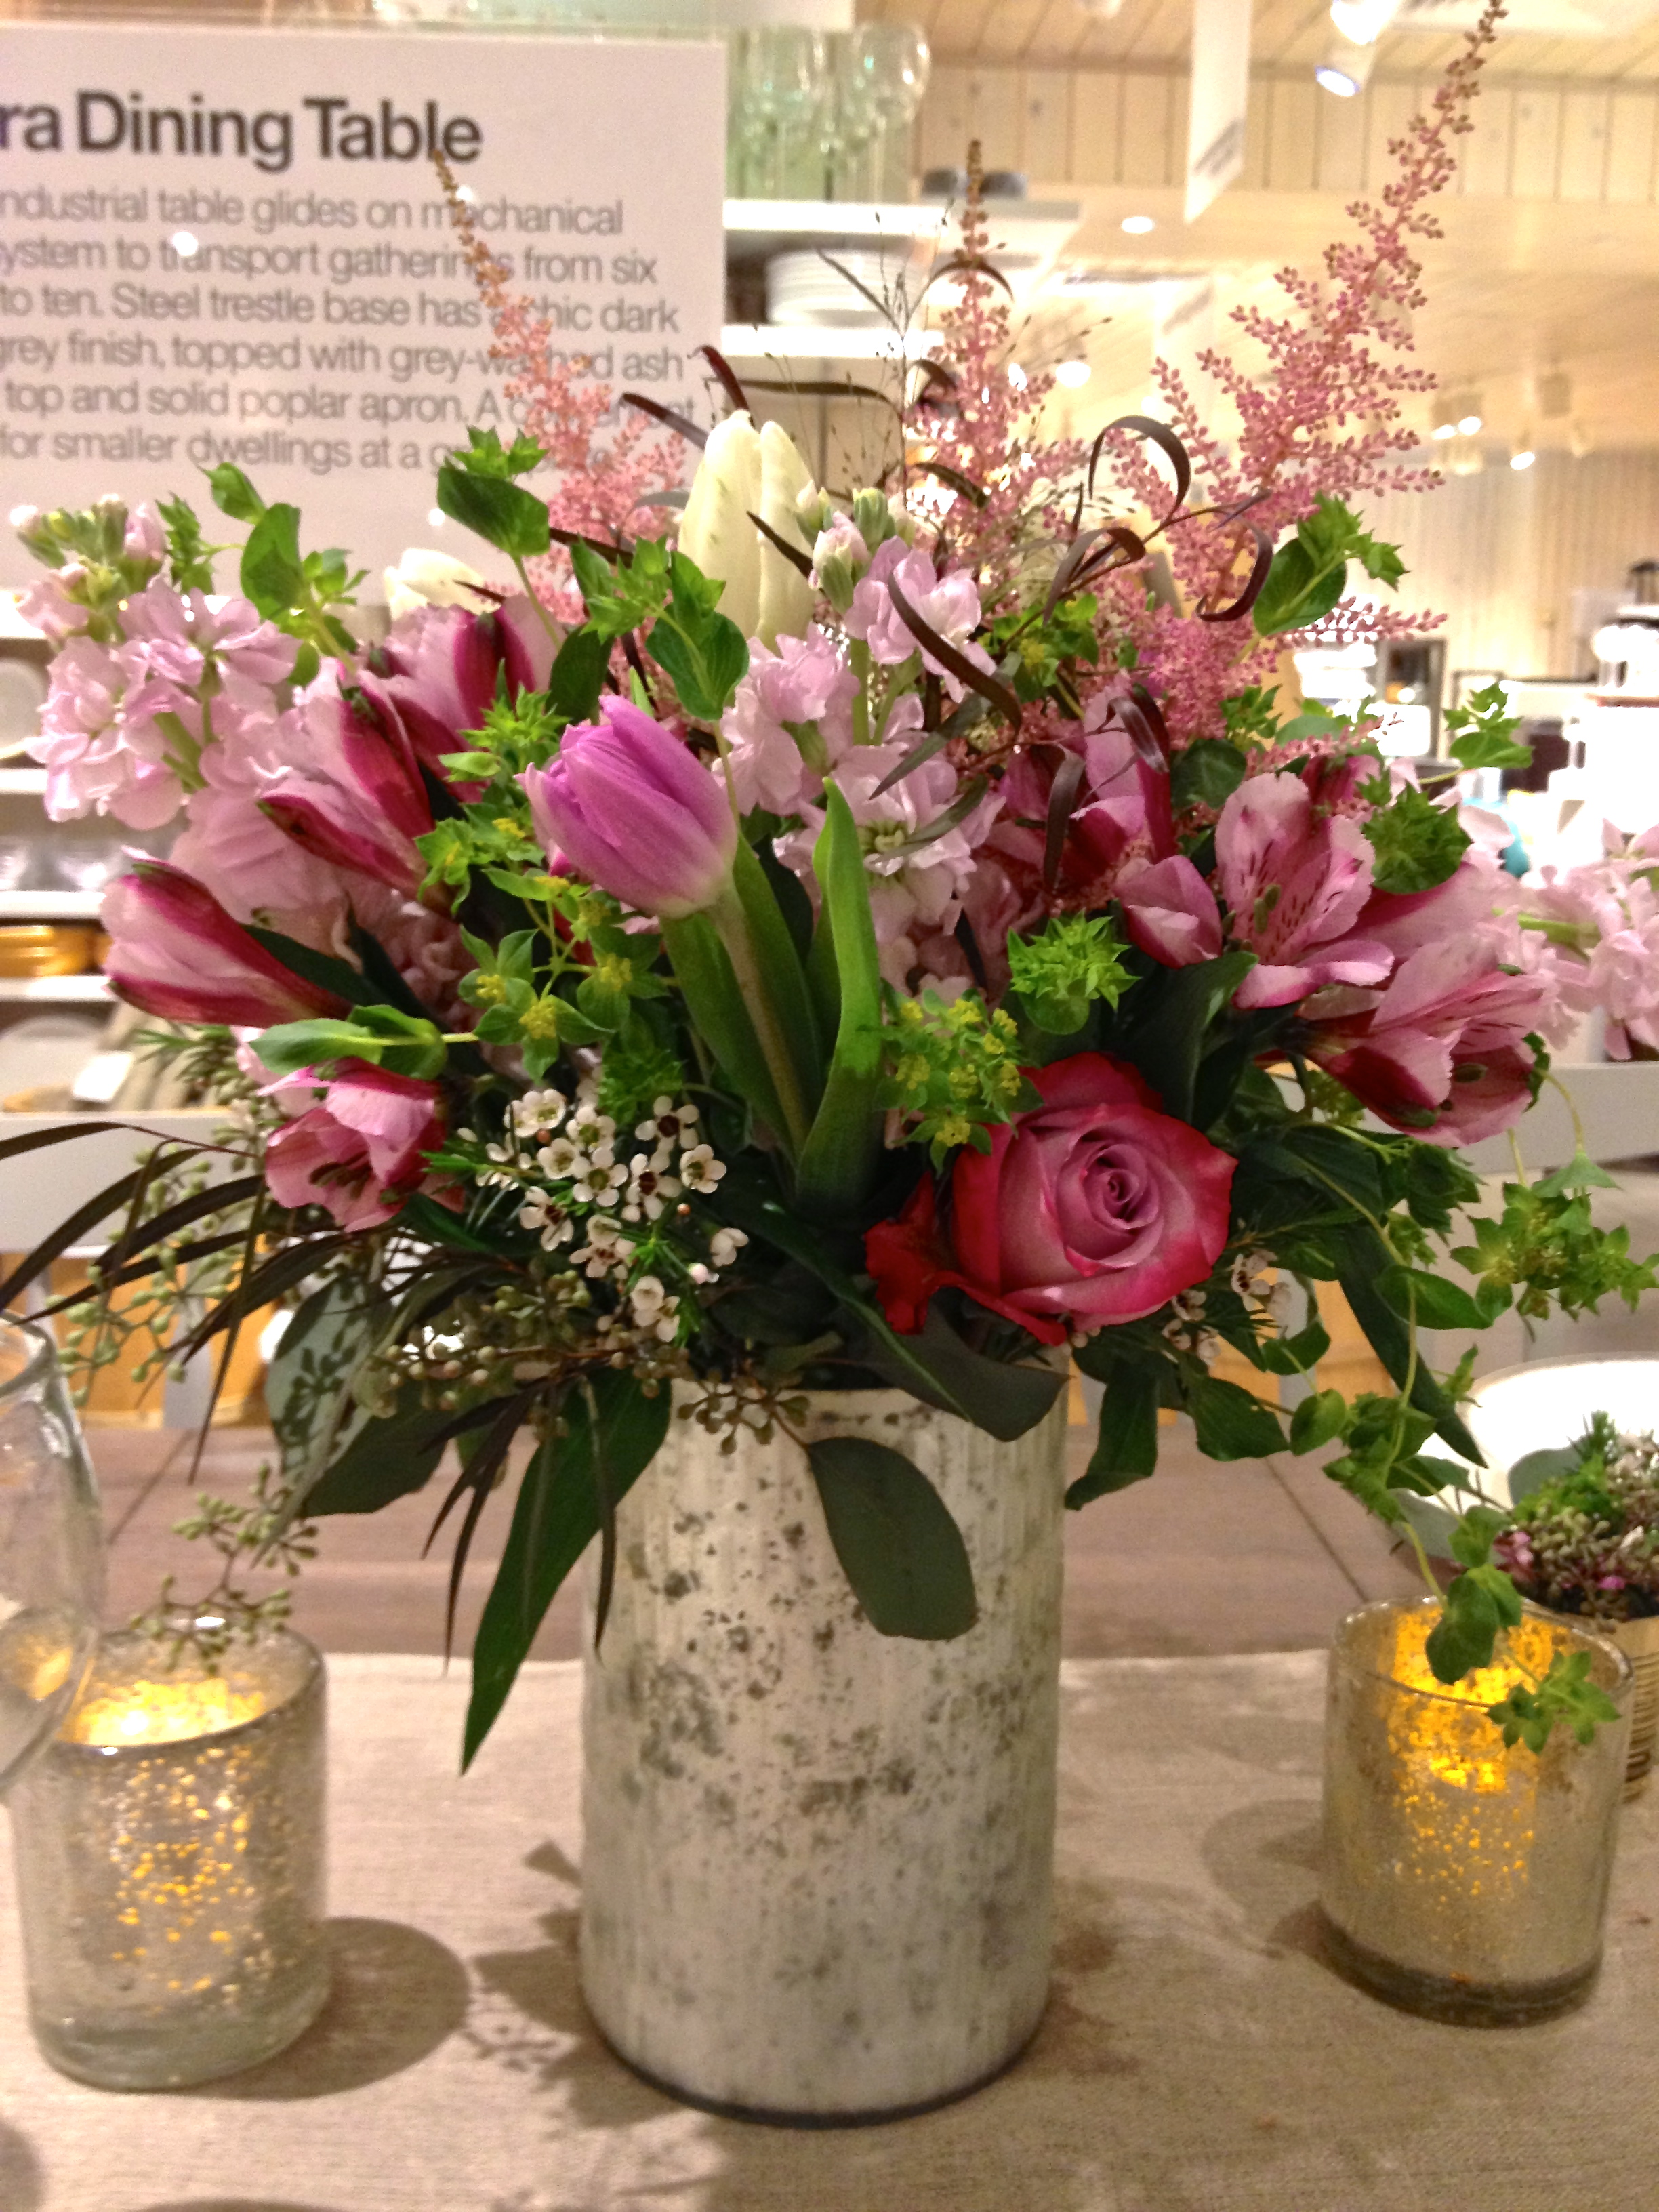 crate & barrel bridal event, white plains, ny